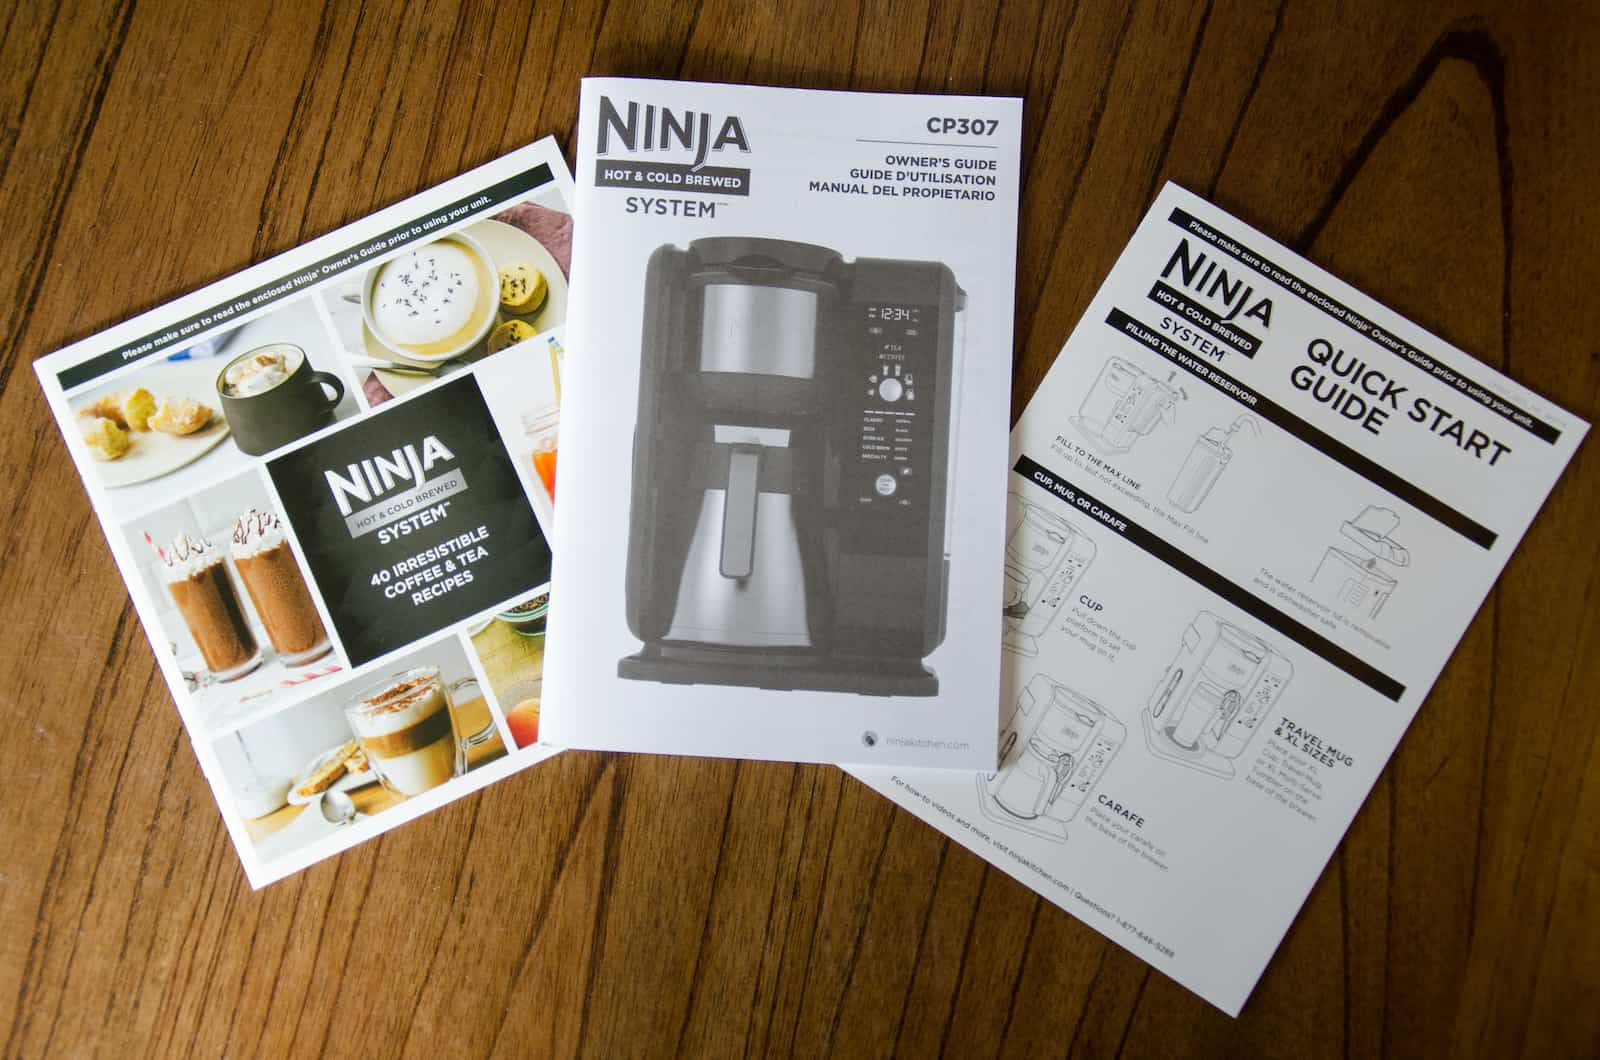 Ninja Manual and recipe book